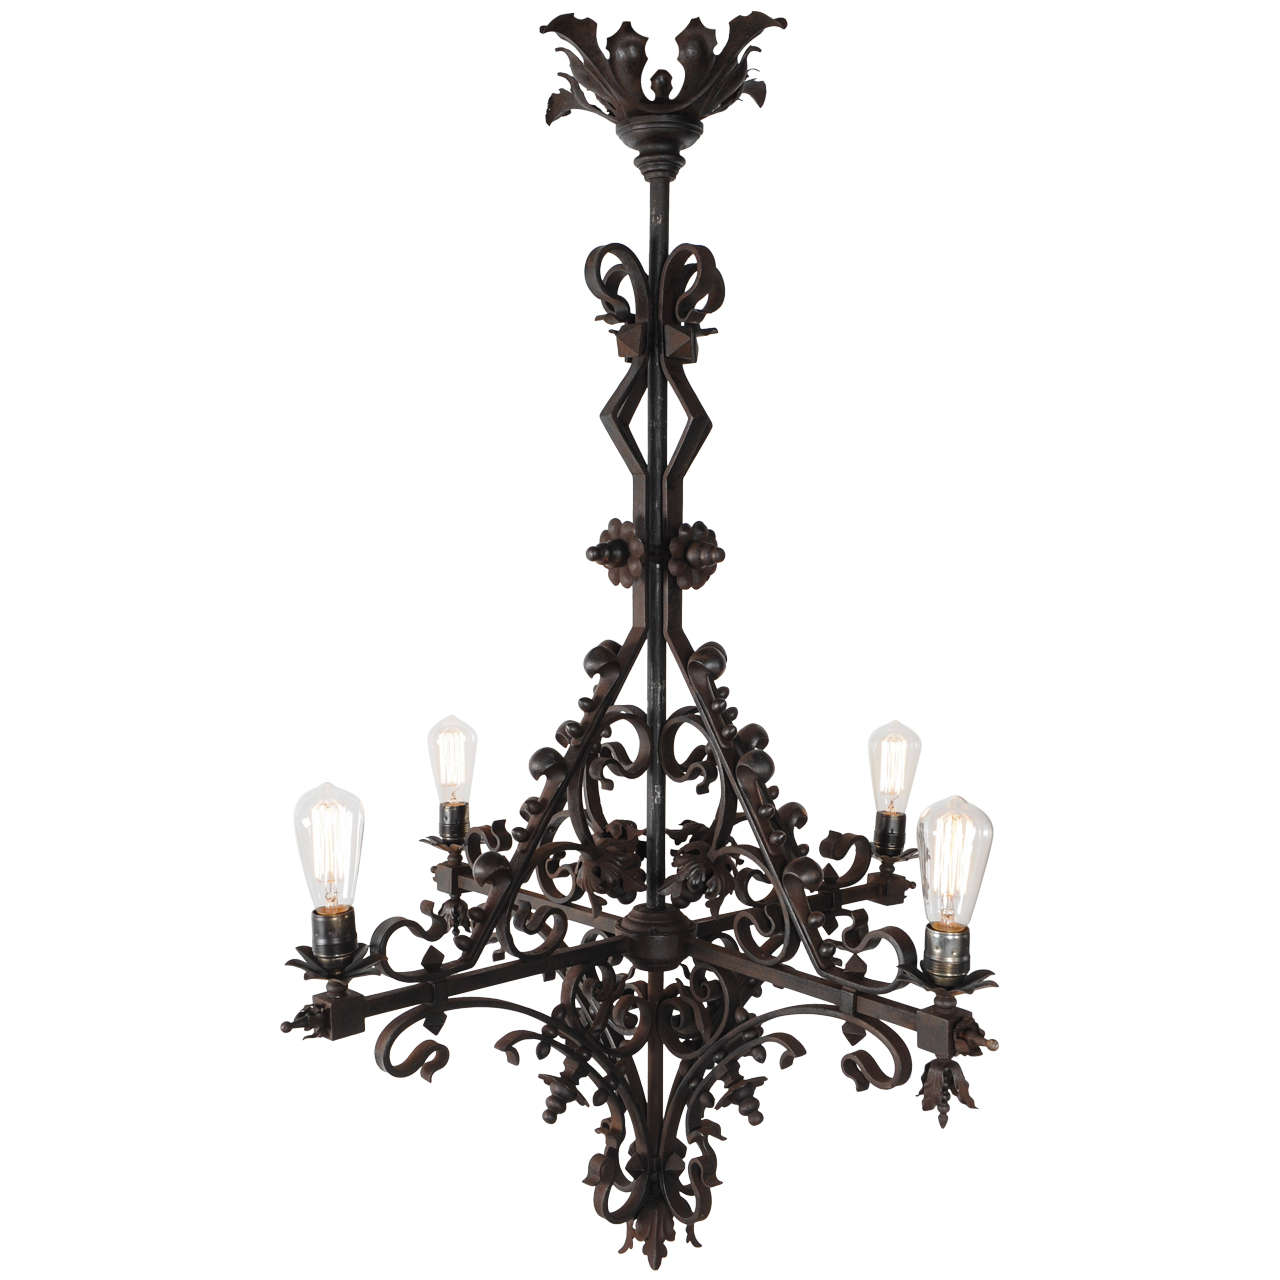 early 20th century steampunk wrought iron church chandelier